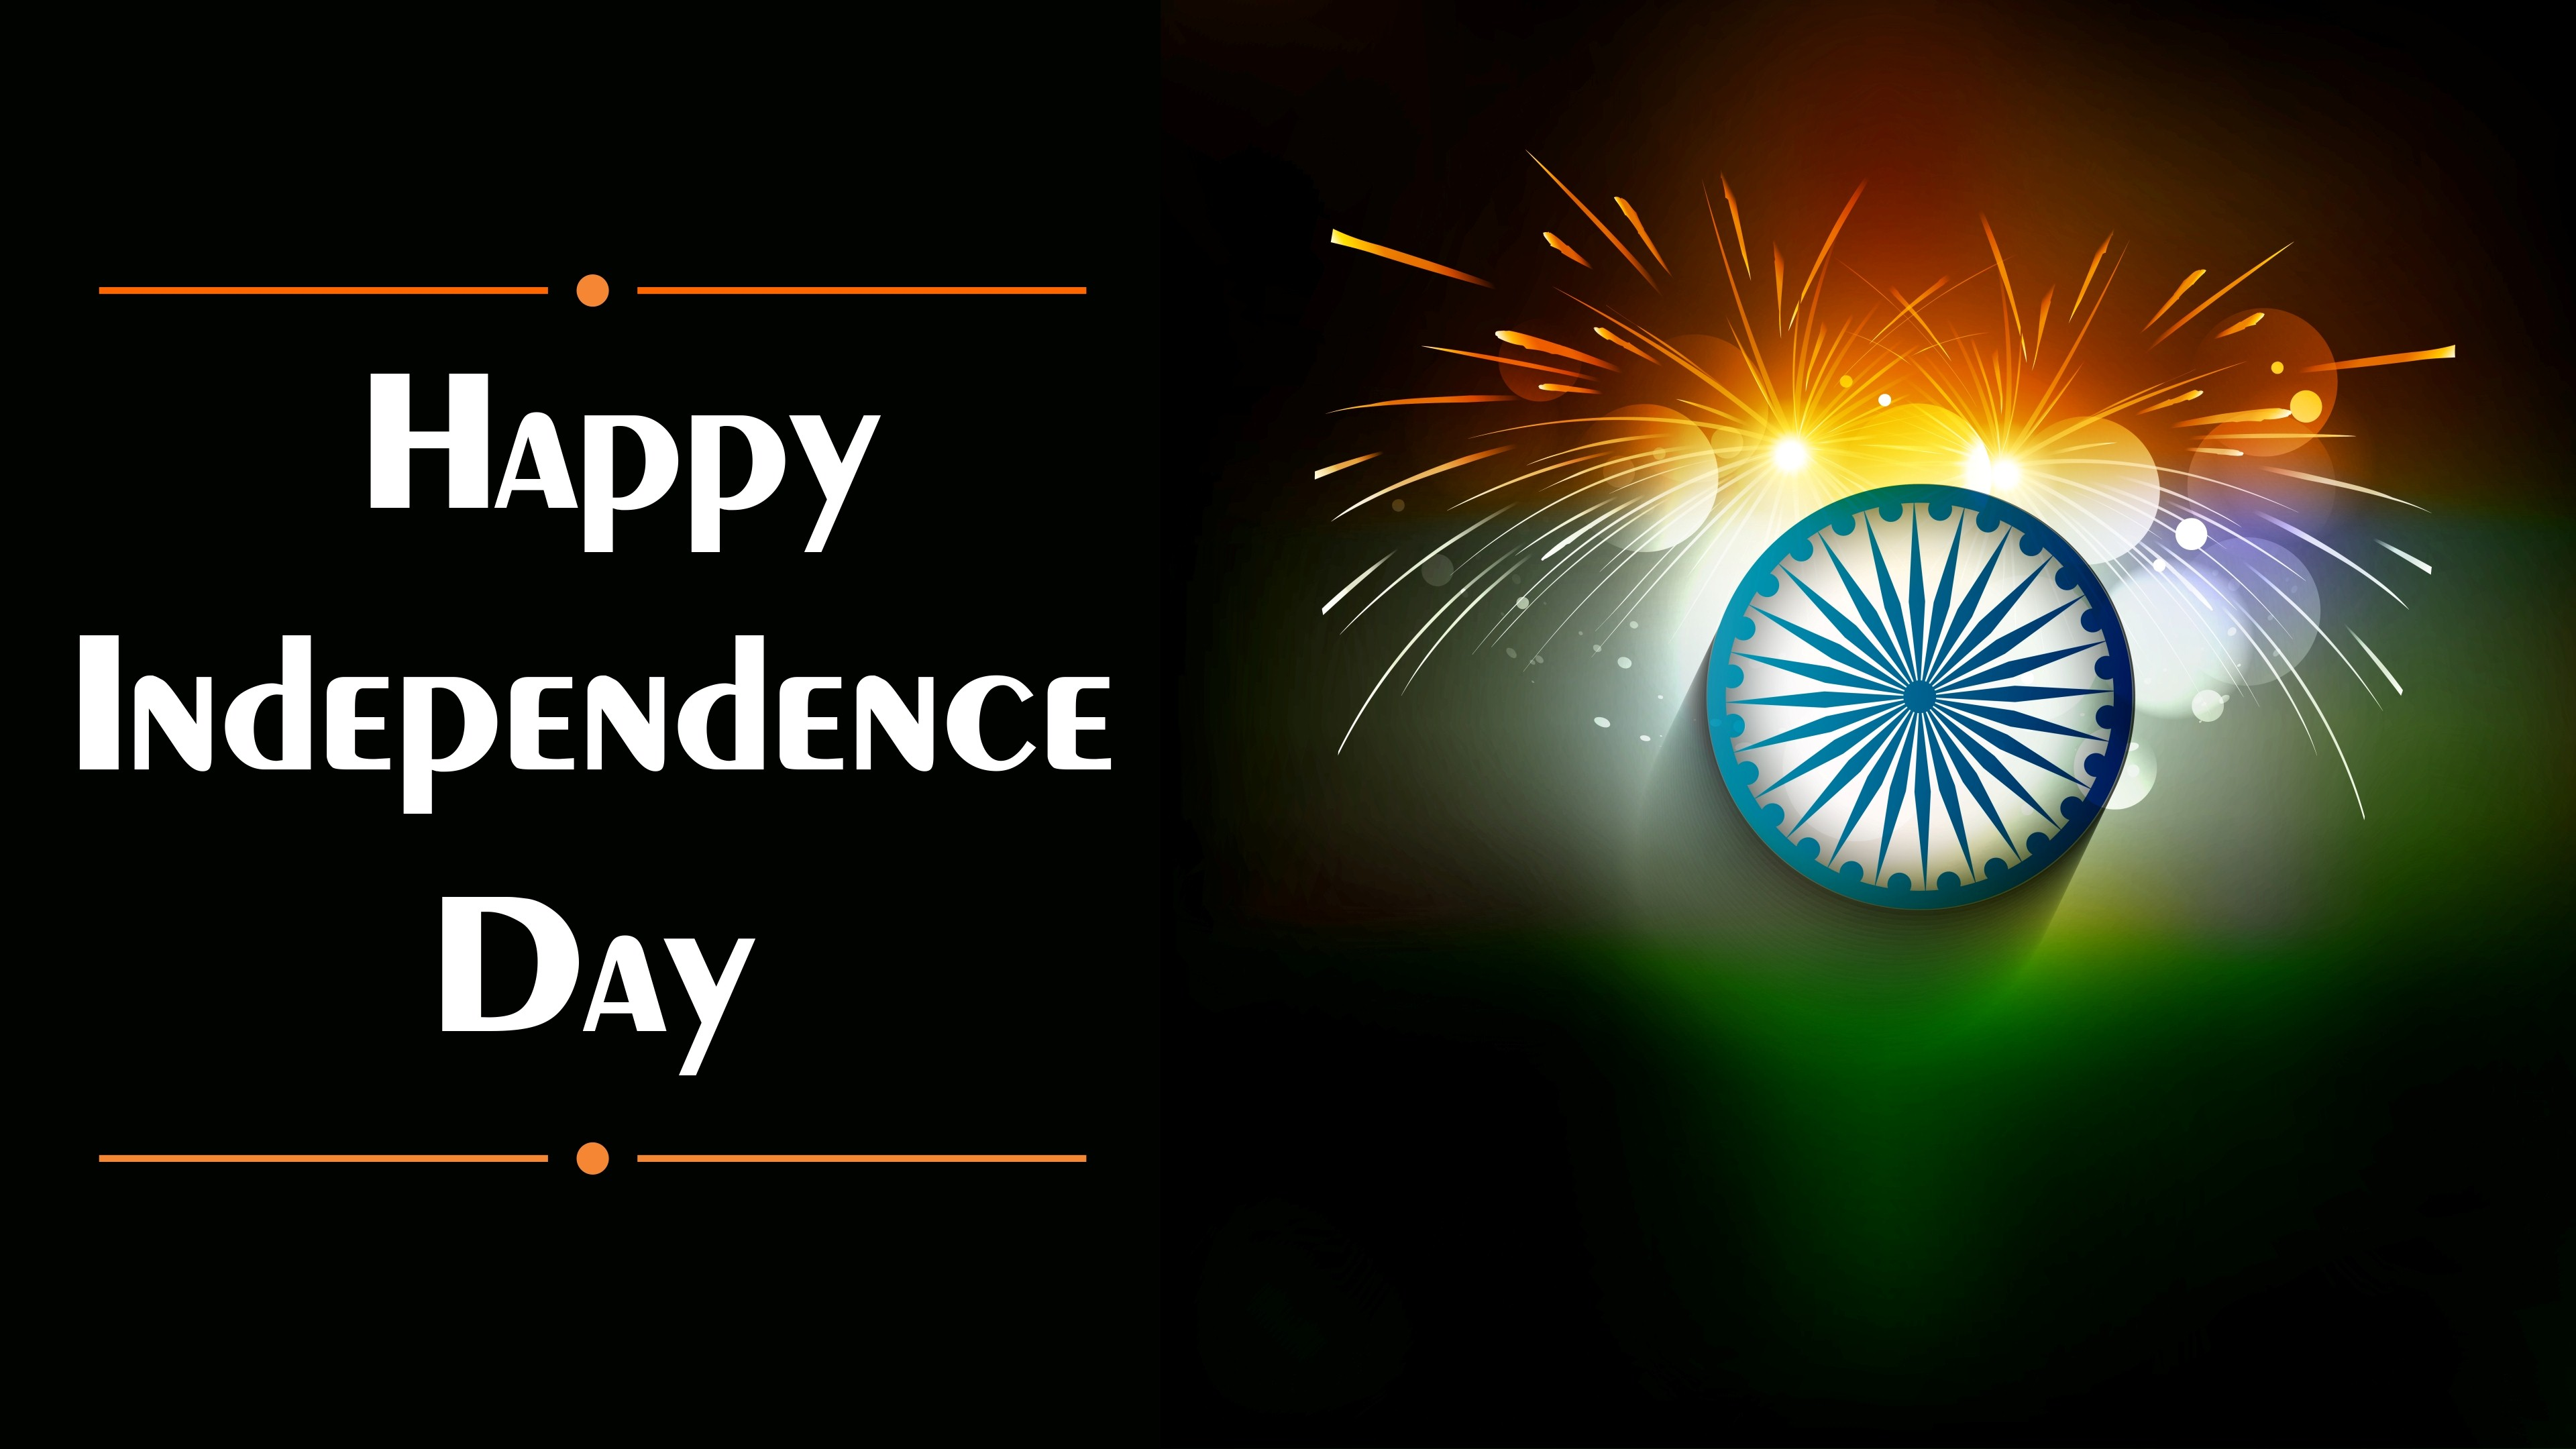 Wallpaper download india - Independence Day India Wallpaper Free Download